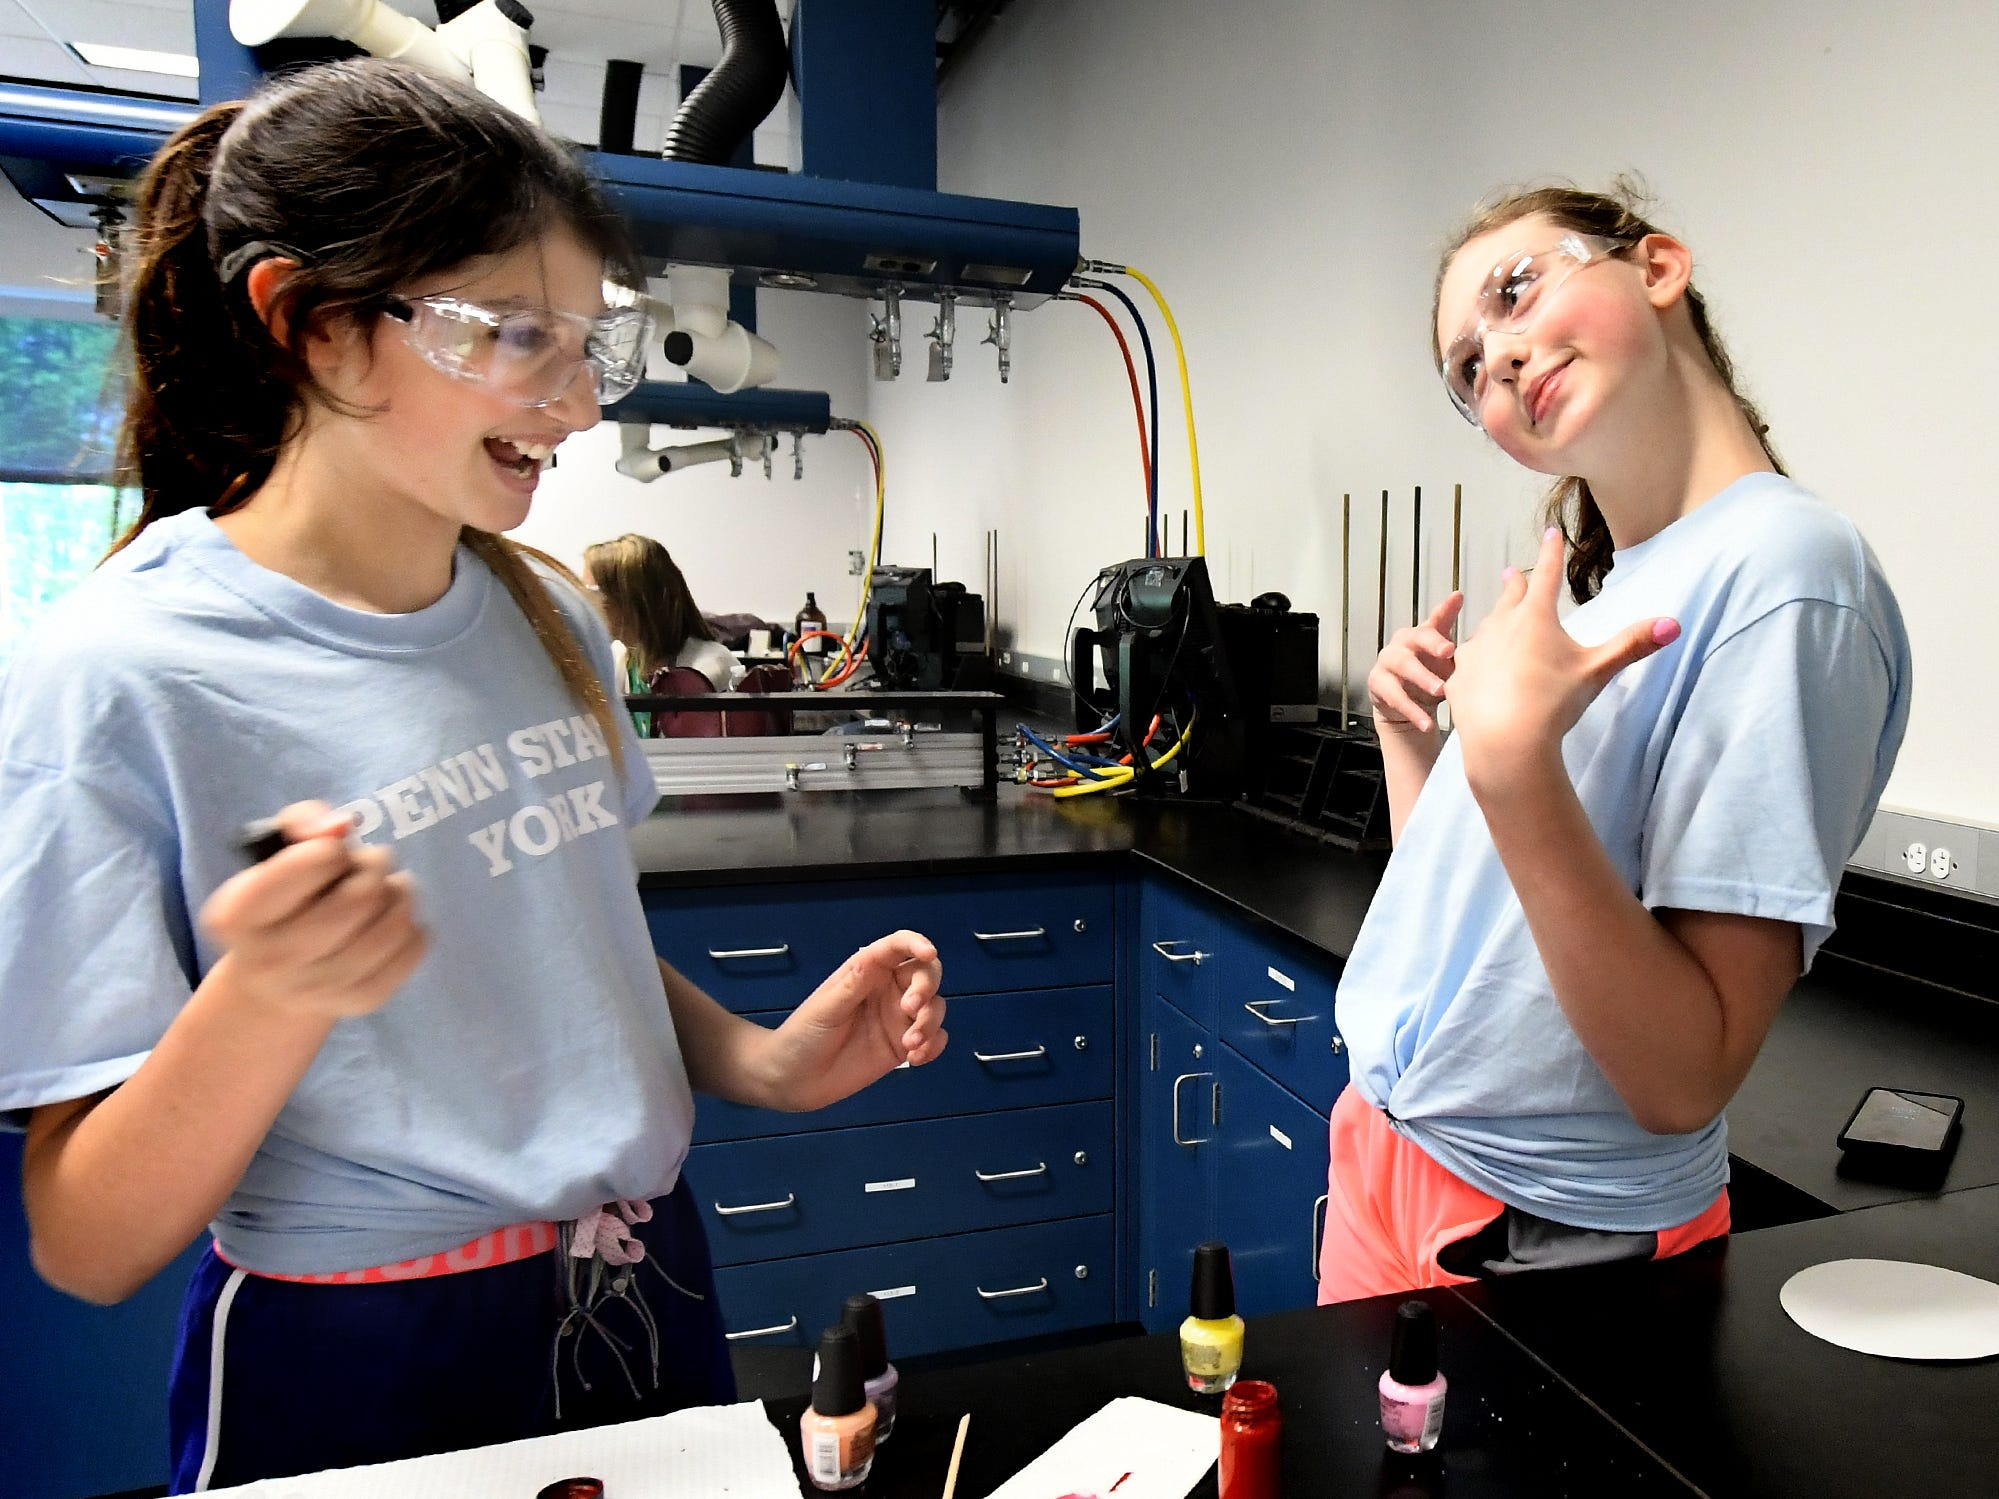 Dallastown Middle School student Elliot Post-Kulisiewicz shows off the nail polish she applied to classmate Emerson Dunker, left, during The Science of Color in Cosmetics workshop at the Pathways to Your Future: Exploring STEAM Careers event at Penn State York Friday, May 10, 2019. Over 200 seventh-grade girls from 28 area schools participated in the program which highlighted science, technology, engineering, art, and mathematics (STEAM) careers. Industry leaders administered the workshops during the program, which is in its 23rd year. Bill Kalina photo